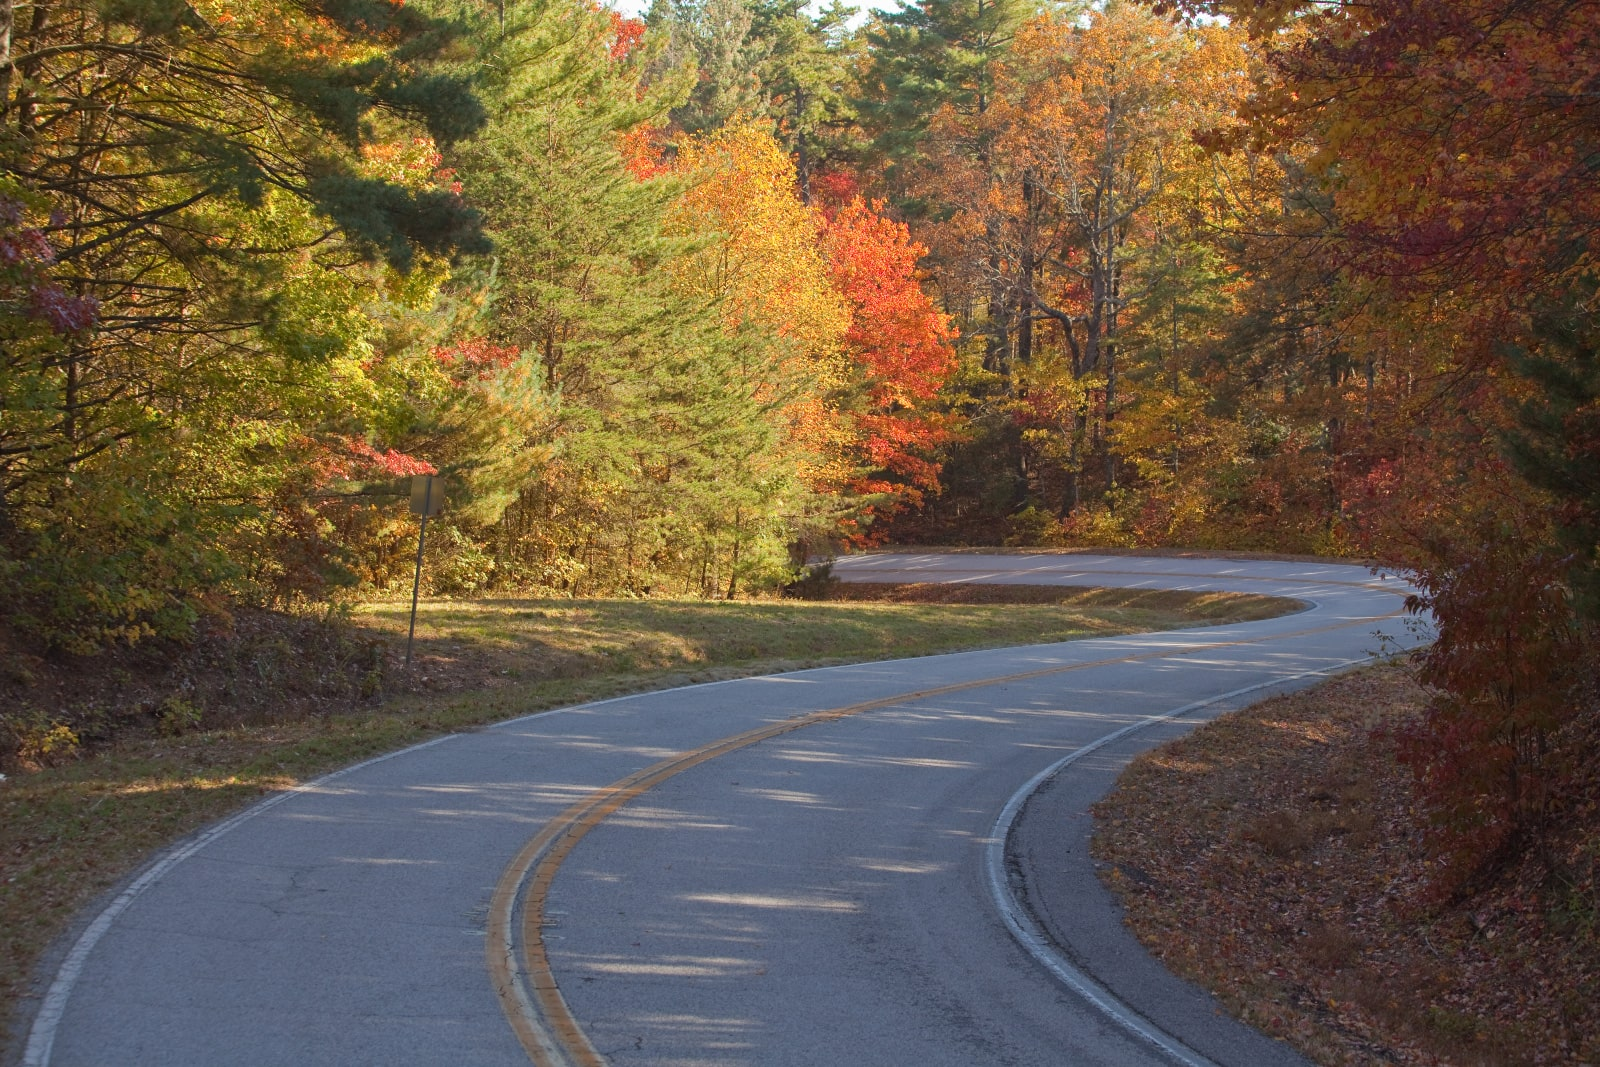 Richard B. Russell Scenic Highway in the Chattahoochee-Oconee National Forest